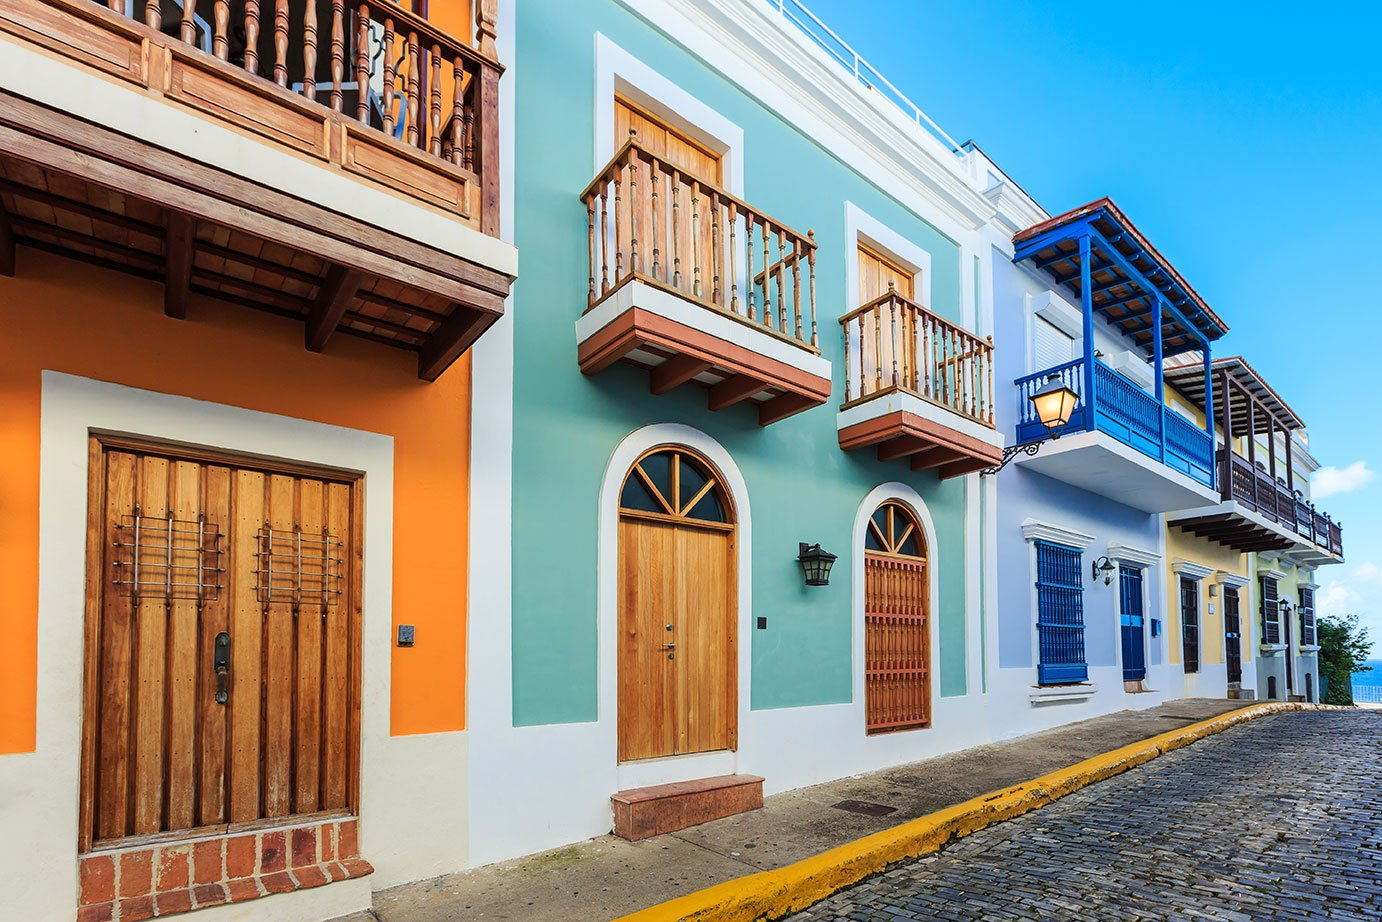 Two-story homes in orange, green, and blue line the streets of San Juan